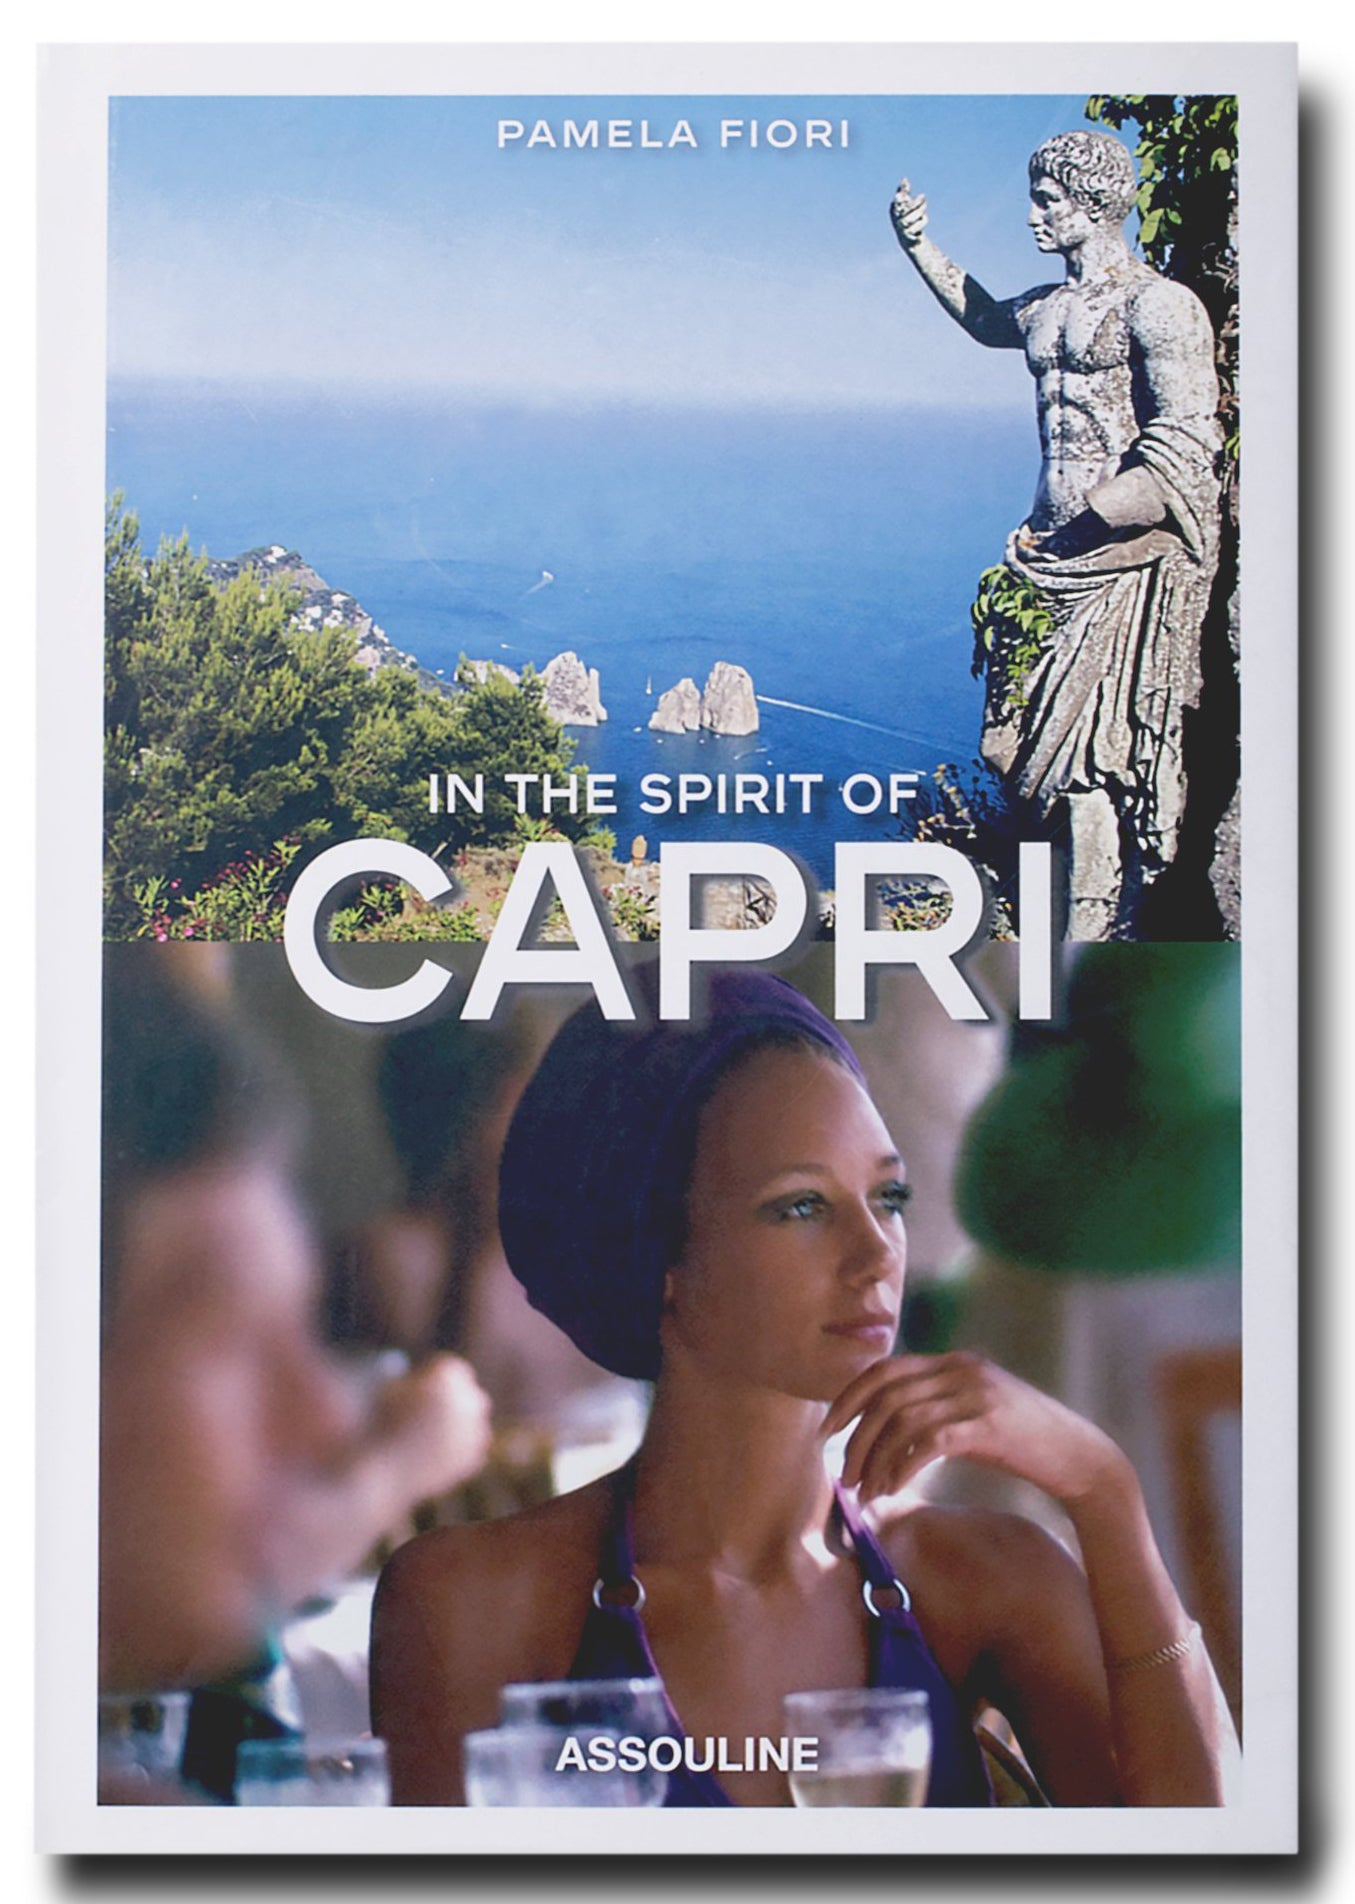 faae22f66 IN_THE_SPIRIT_OF_CAPRI-A_2048x_408b9b94-0283-4698-add0-891cd9107204_2048x2048.jpg?v=1543785251